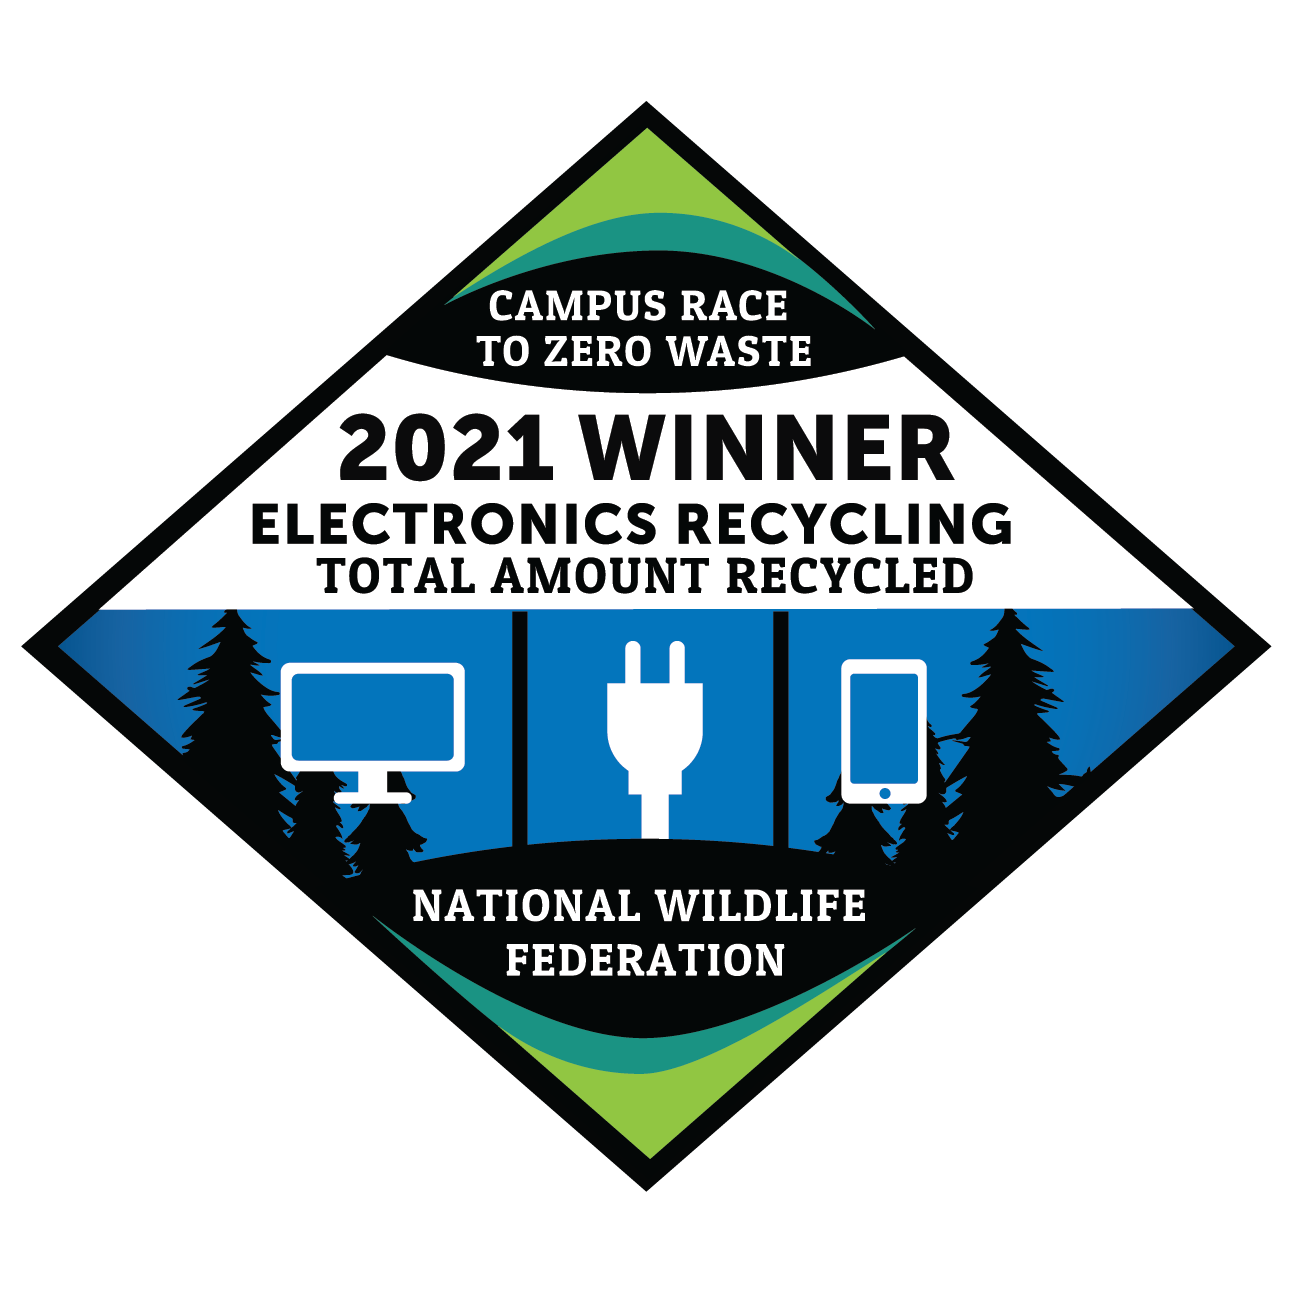 Kent State won the Campus Race to Zero Waste Electronics Recycling Award